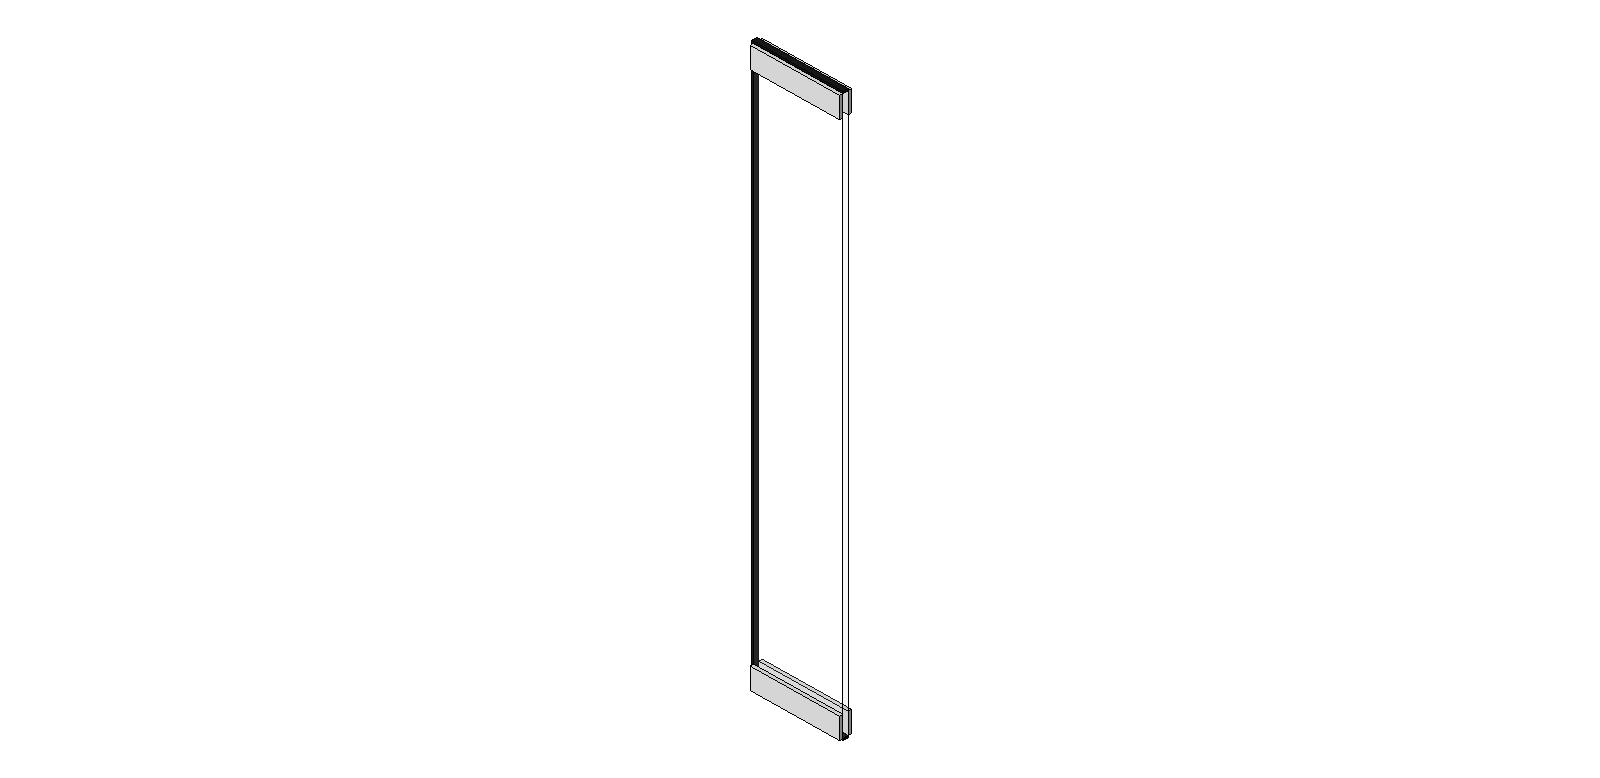 Structural Glass Panel Dimensions : Inkan ltd curtain wall and glazed assemblies bim objects